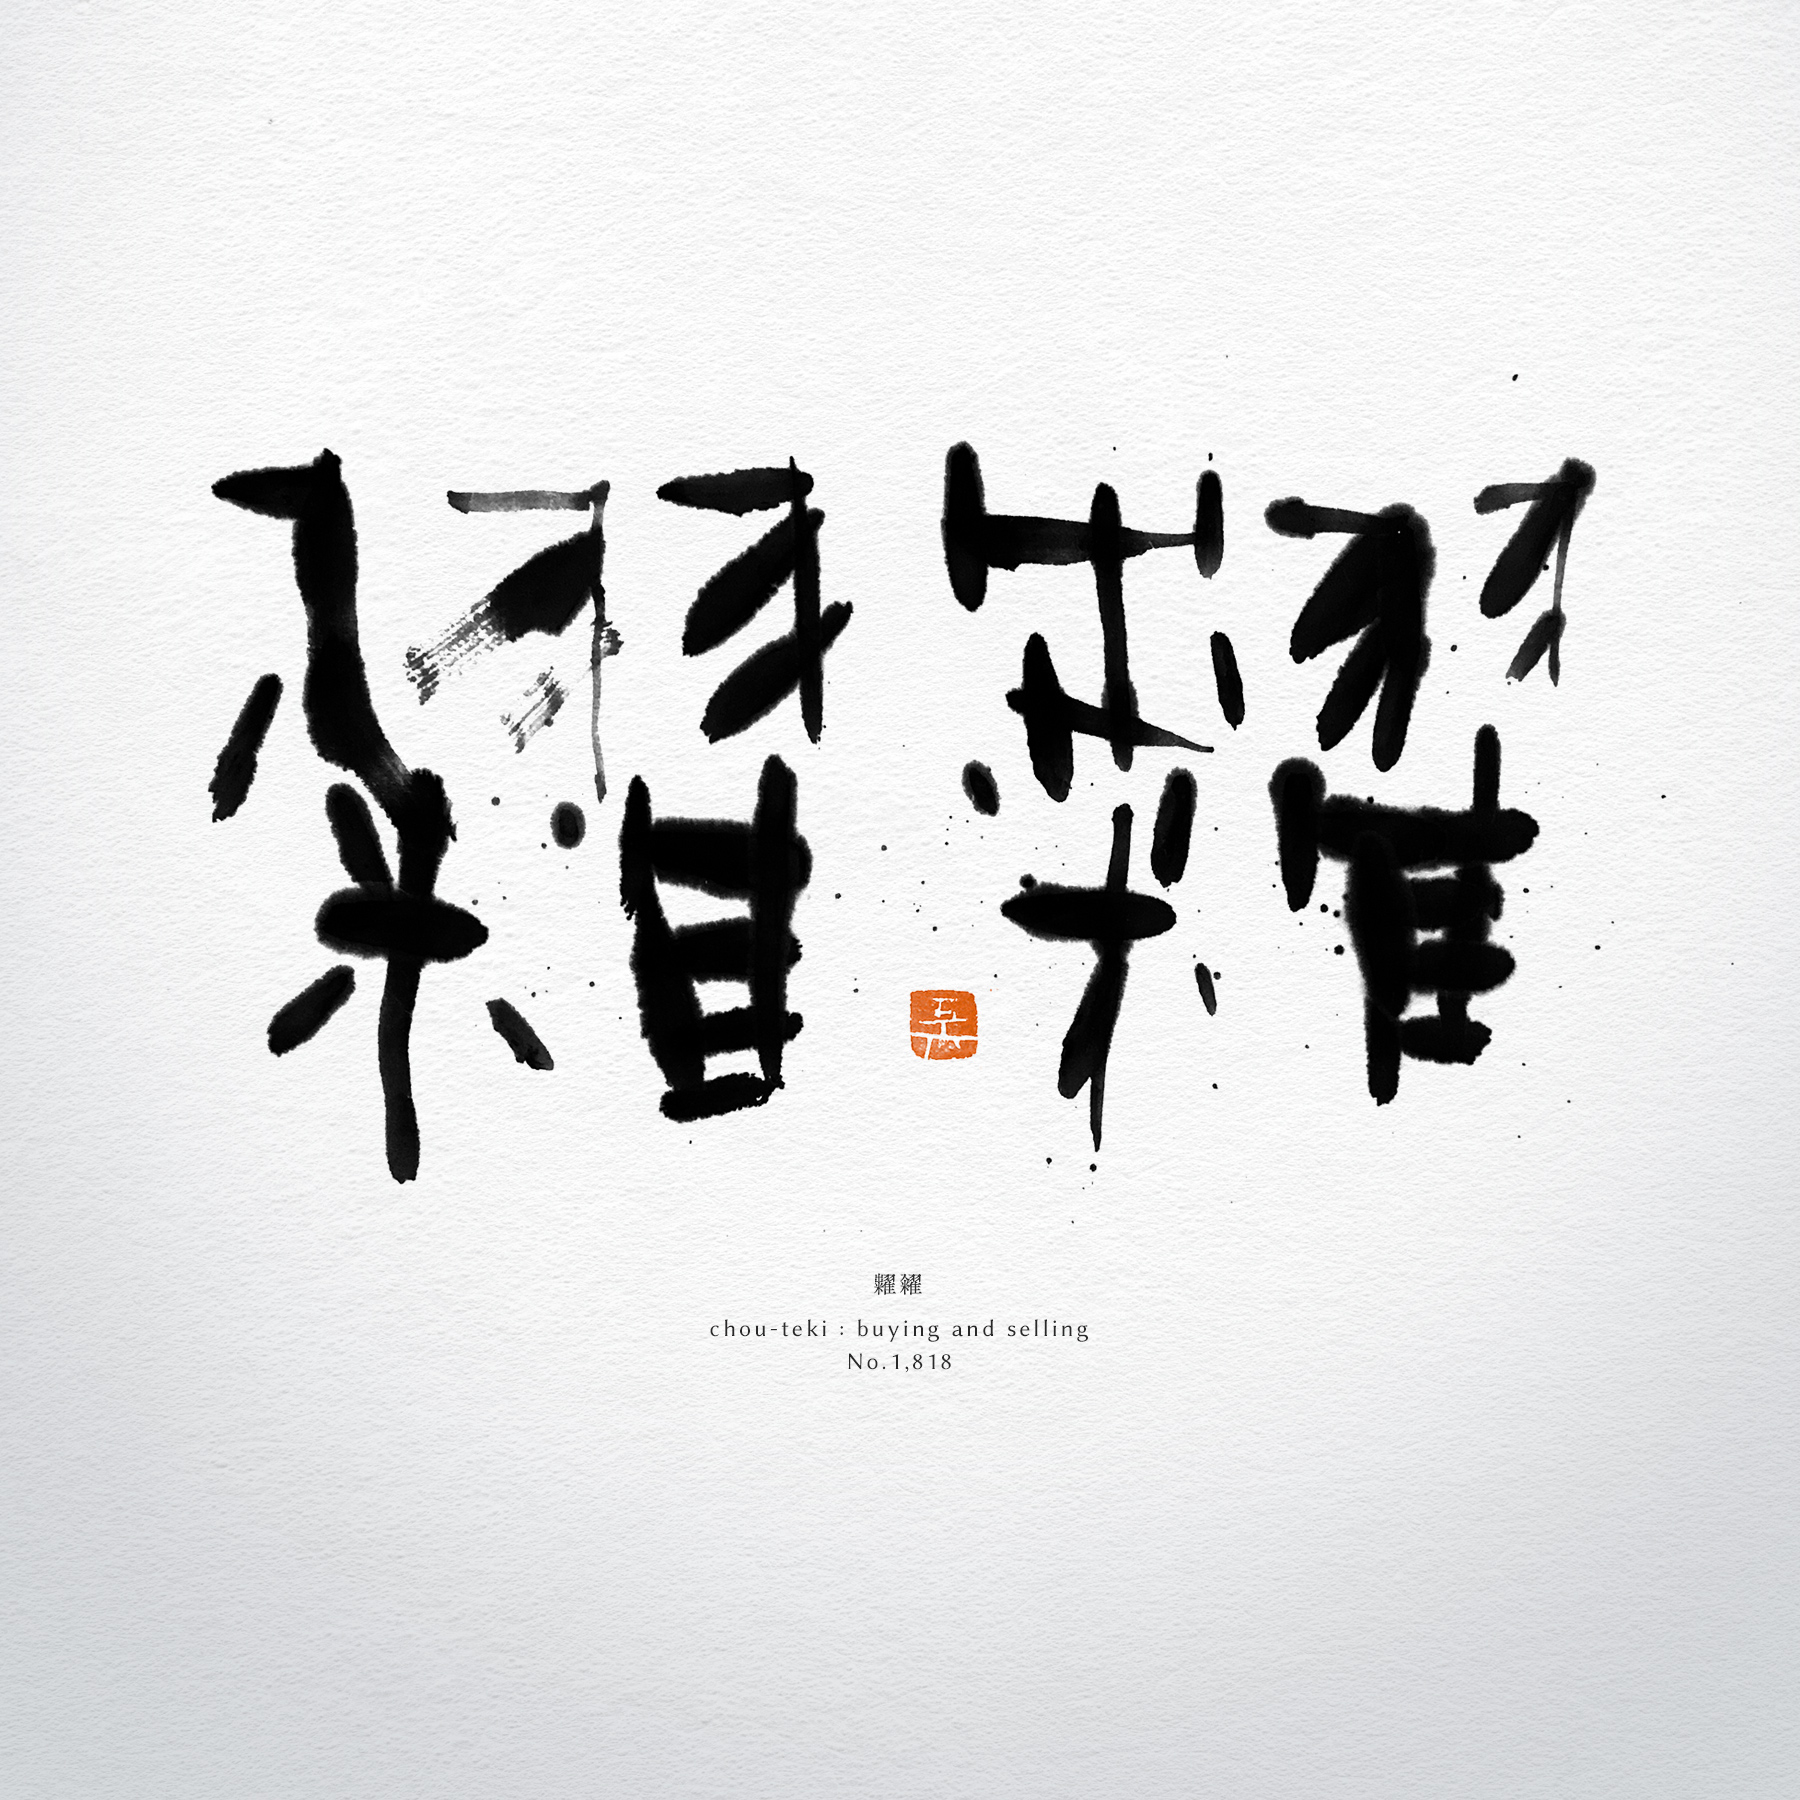 糶糴 | buying and selling 書道作品 japaneseart japanese calligraphy 書家 田川悟郎 Goroh Tagawa